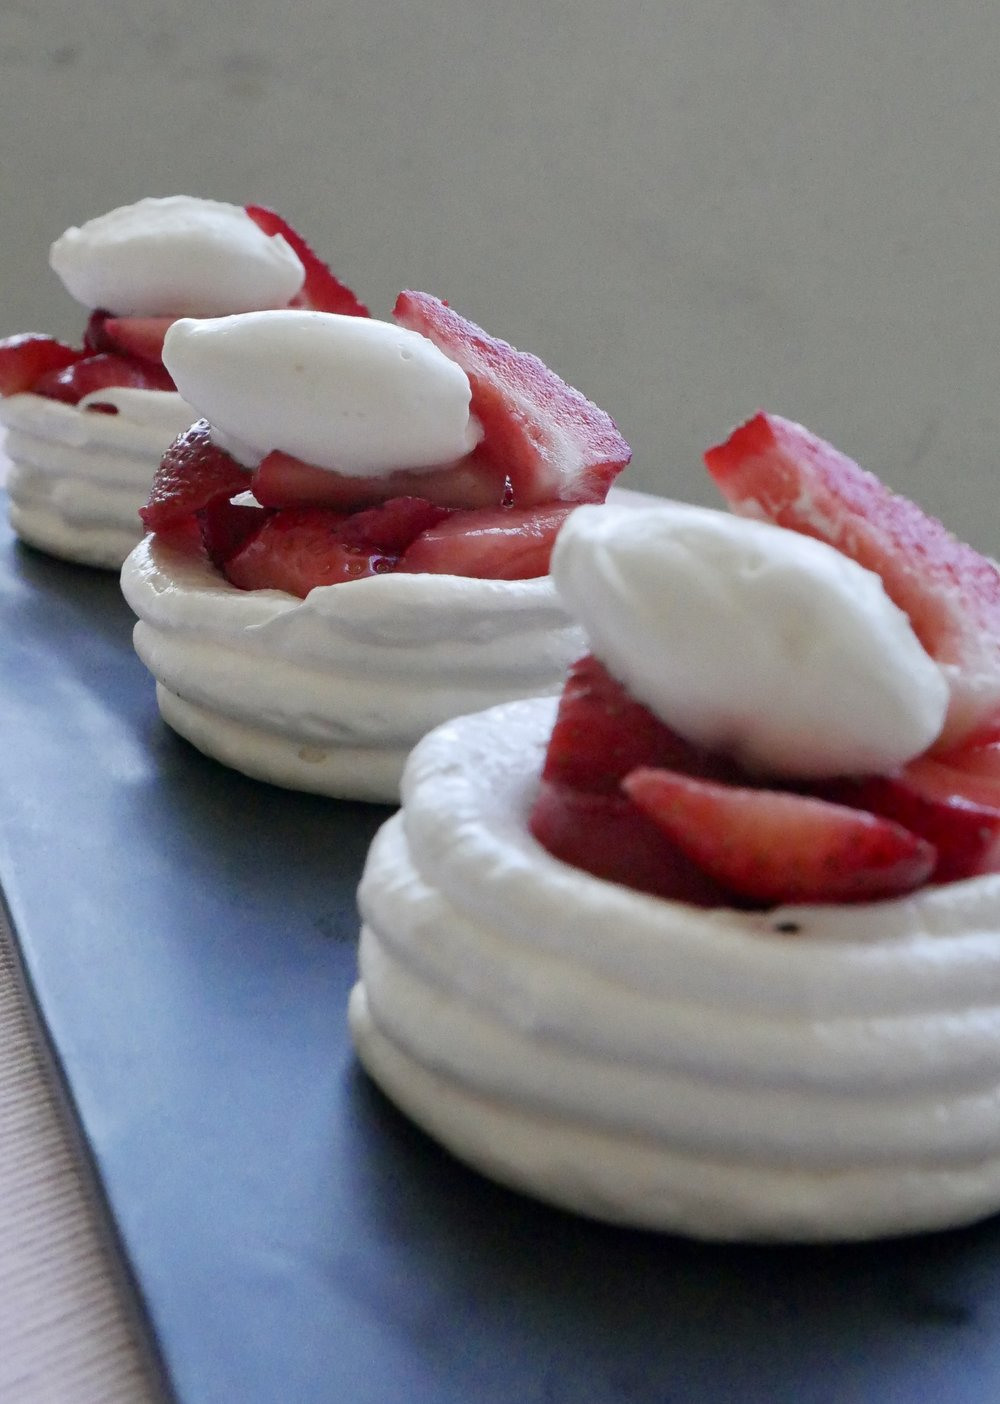 Meringue Nests with Macerated Strawberries and Chantilly Cream